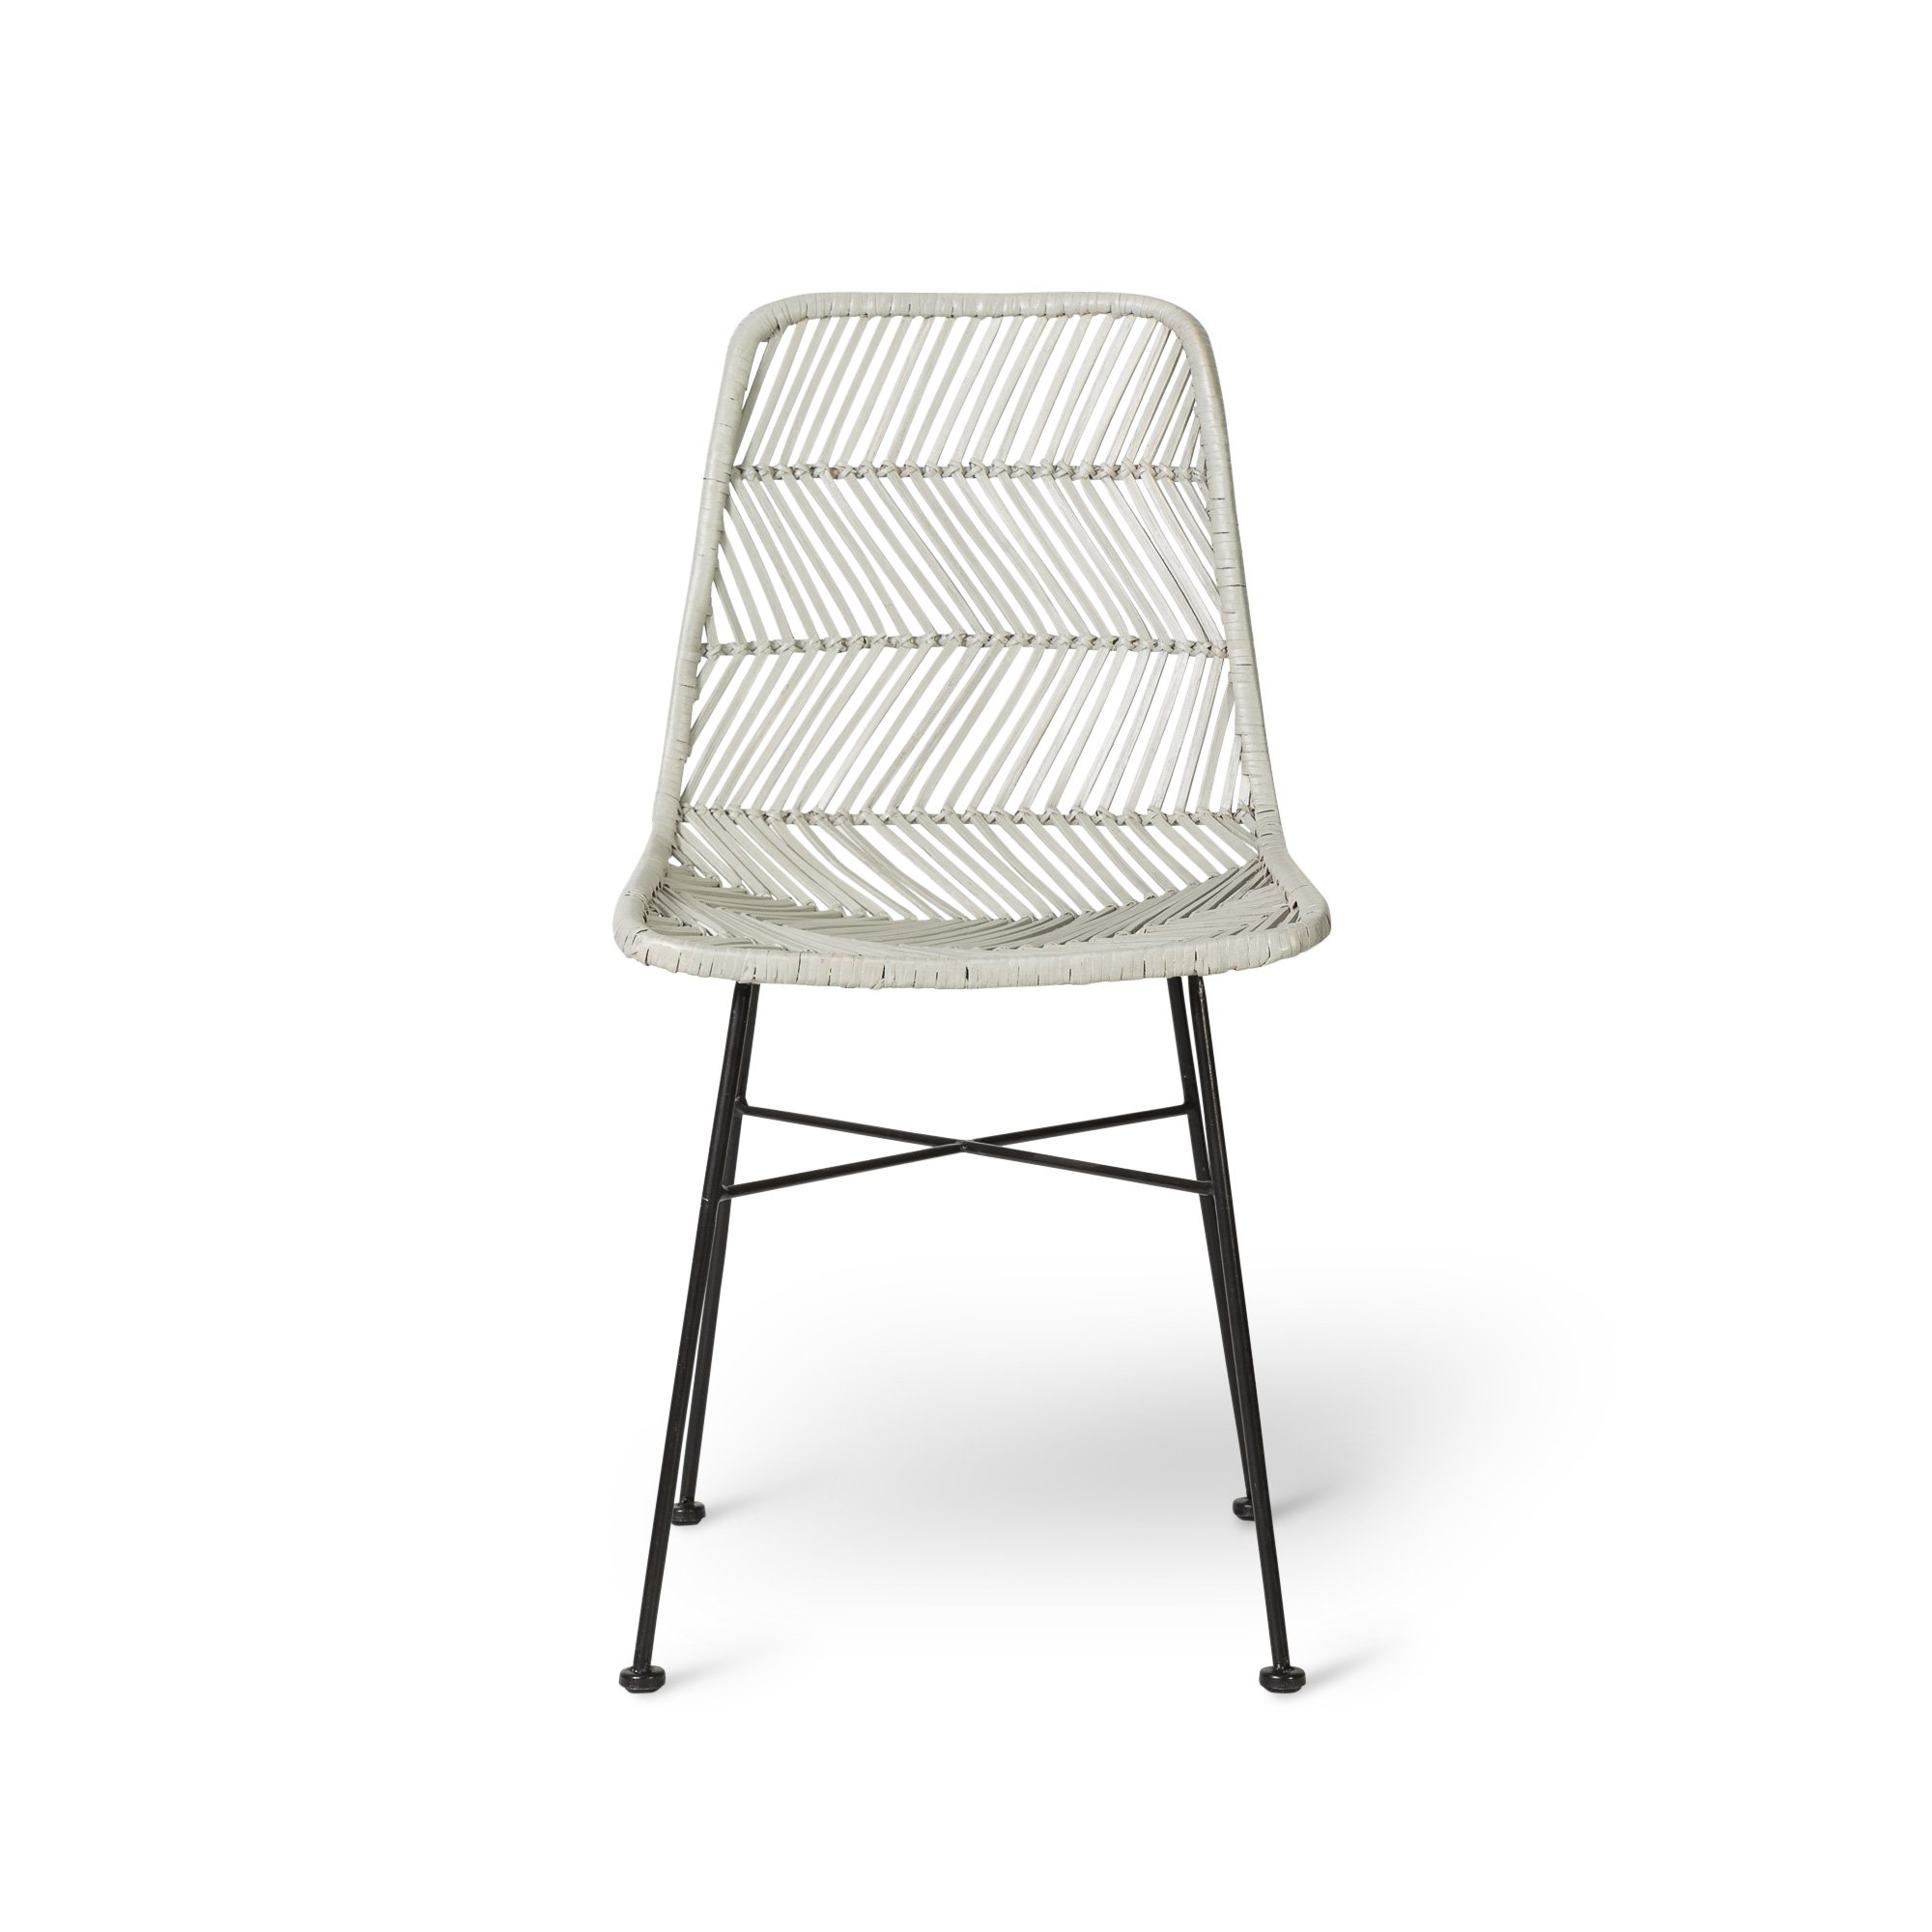 best decorating chairs outdoors your chair for homelife rattan c outdoor area